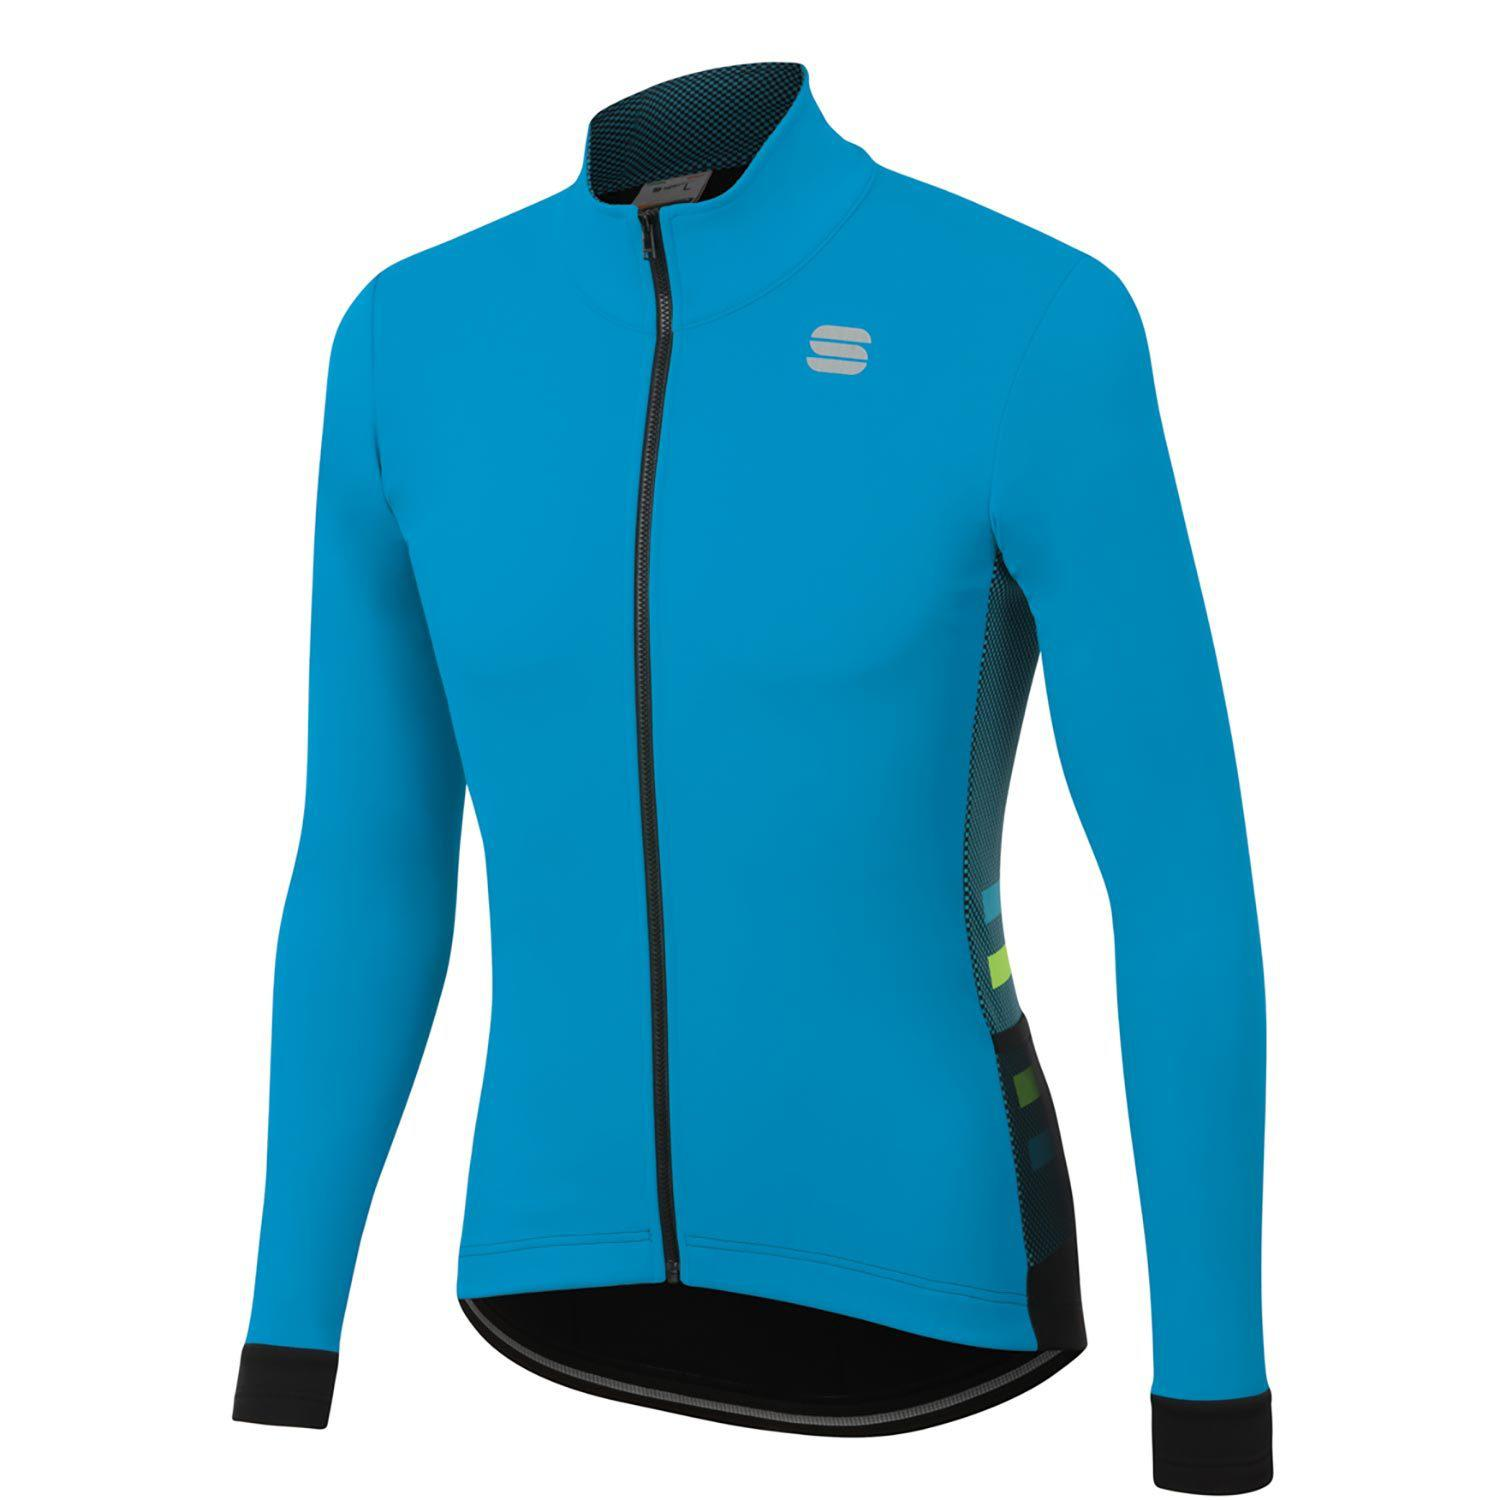 Sportful-Sportful Neo Softshell Jacket-Blue Atomic/Black-S-SF205133982-saddleback-elite-performance-cycling